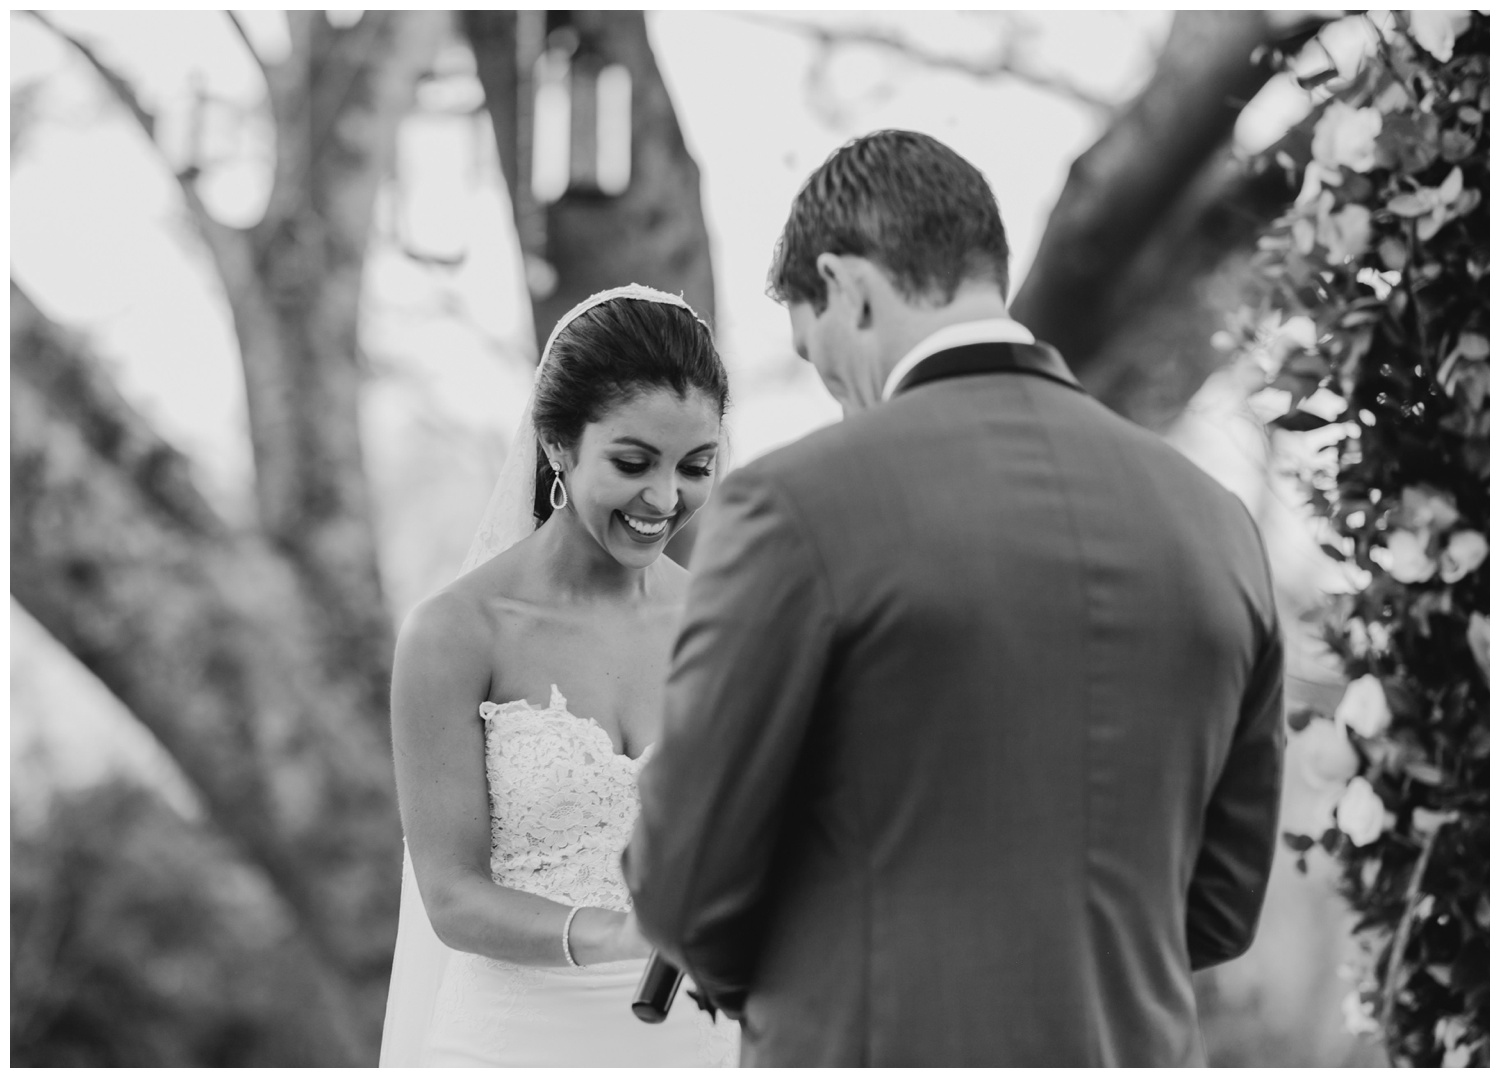 adriana_rivera_miranda_weddings_el_salvador_23.jpg